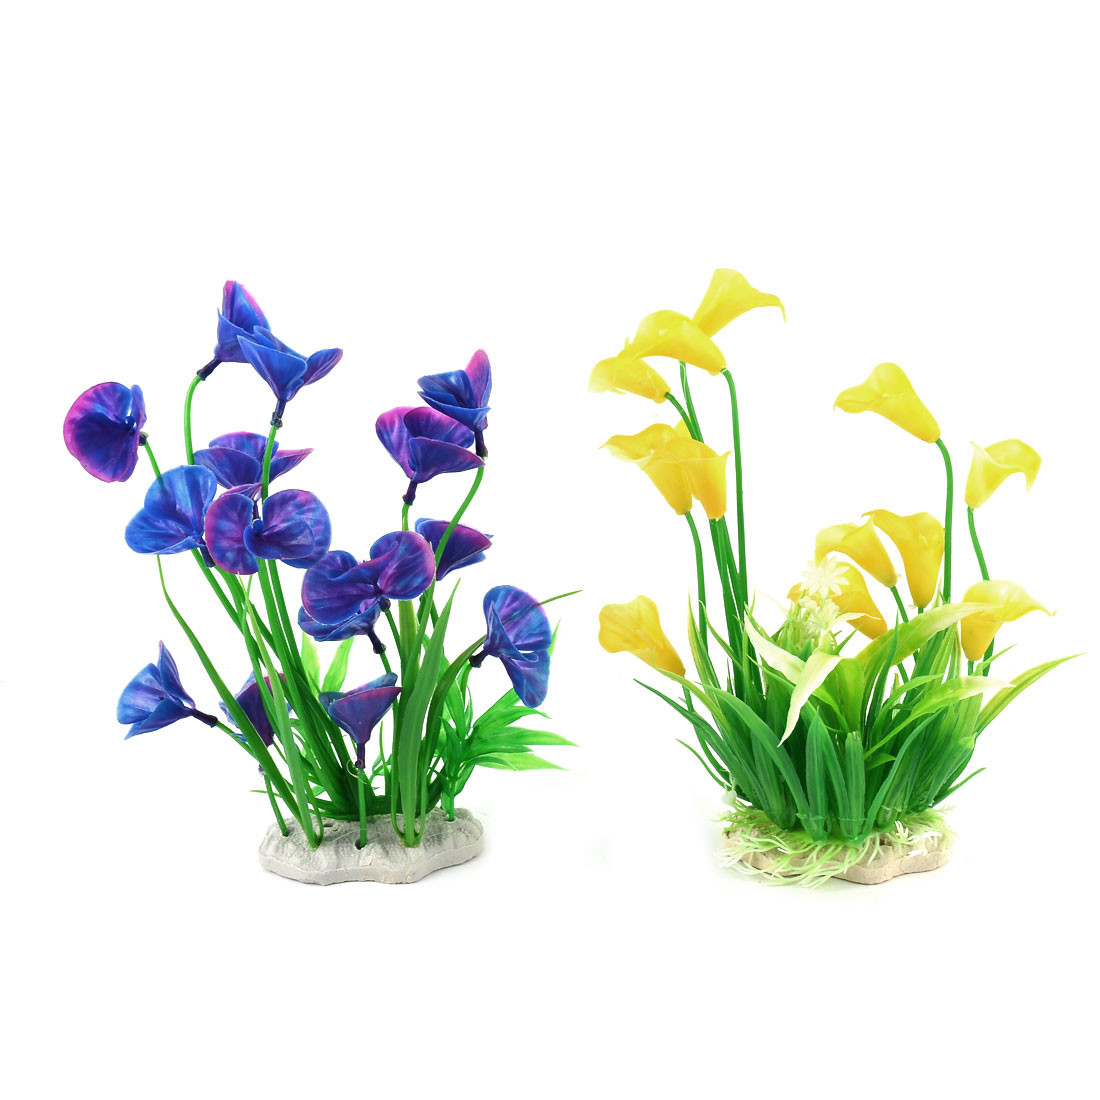 Fish Tank Ornament Plastic Aquarium Plant Decor Artificial Water Grass 2 in 1